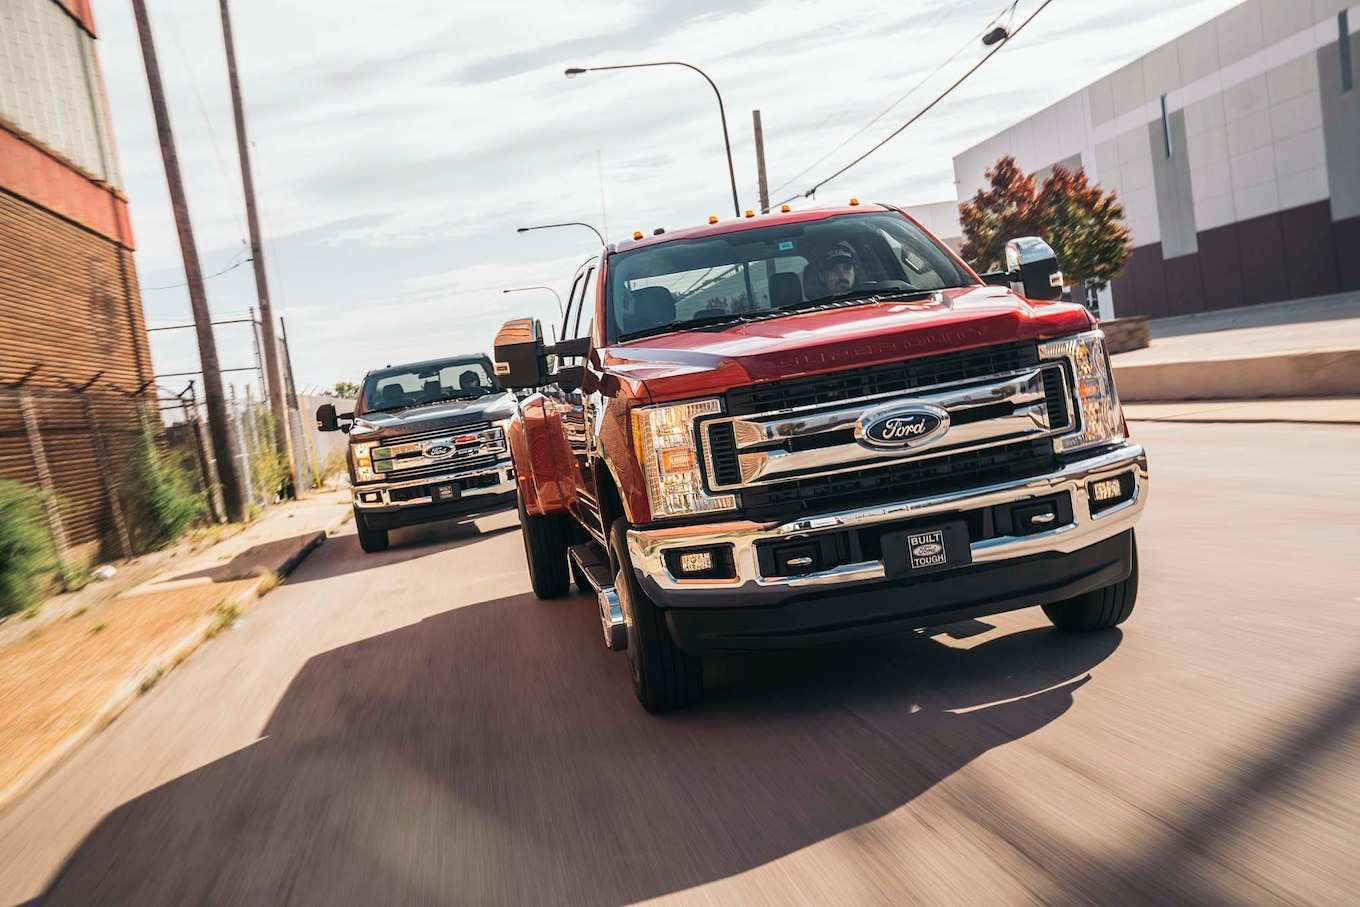 27 Great 2019 Ford Super Duty Order Guide Spy Shoot Photos with 2019 Ford Super Duty Order Guide Spy Shoot